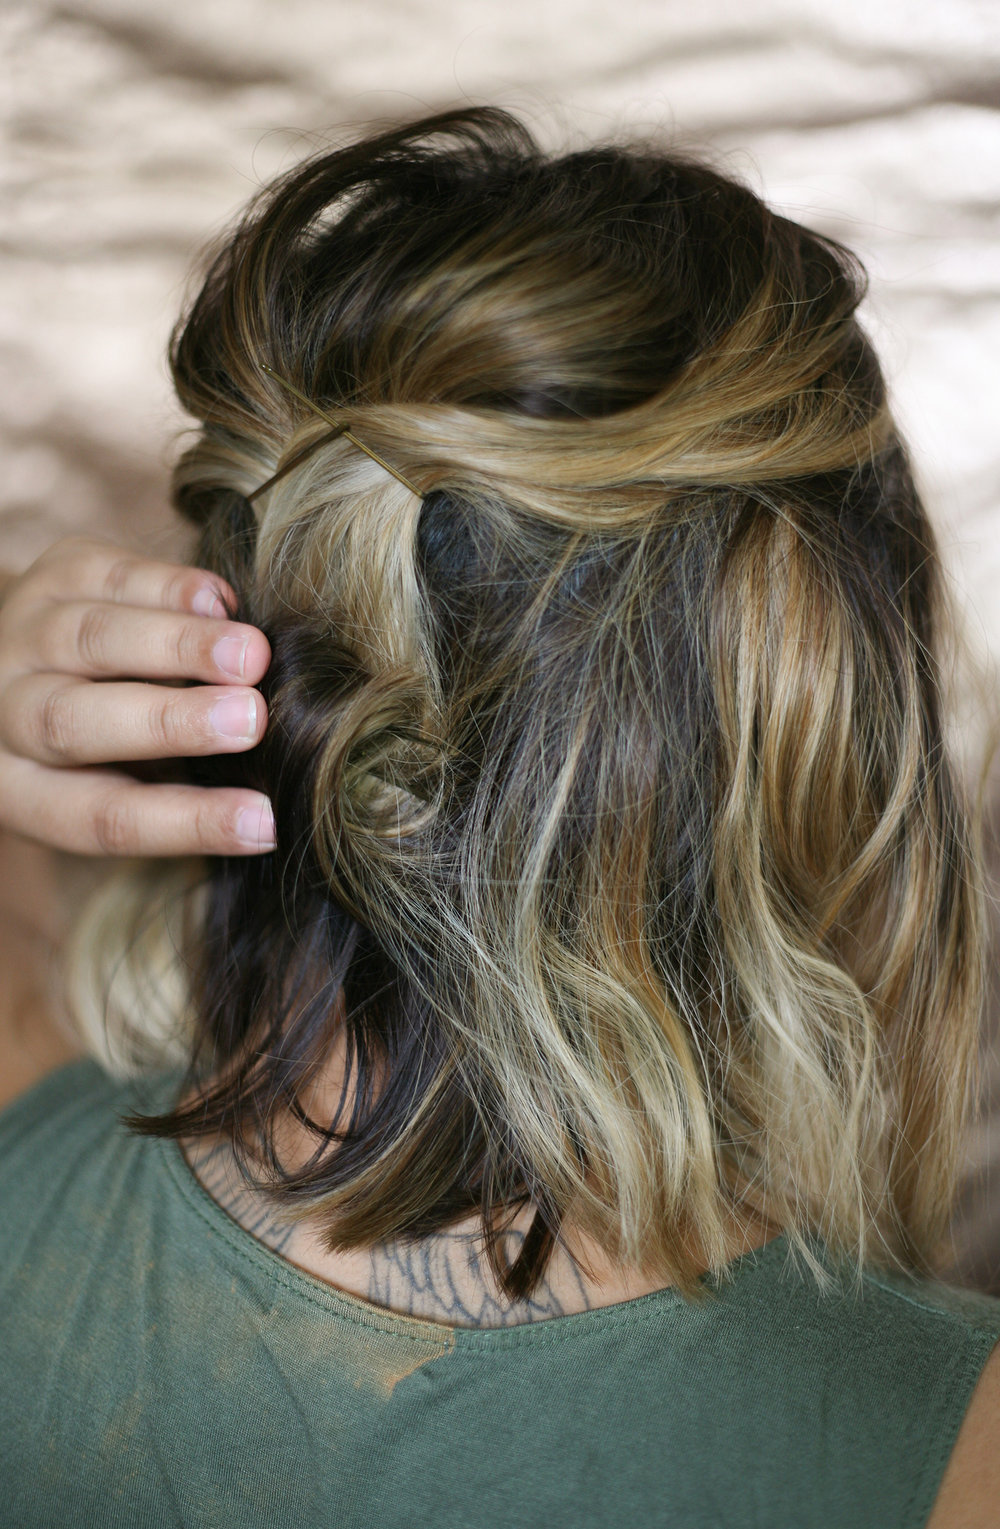 Easy, romantic updo hairstyle for short and medium length hair. Full hair tutorial on beautybyjessika.com.